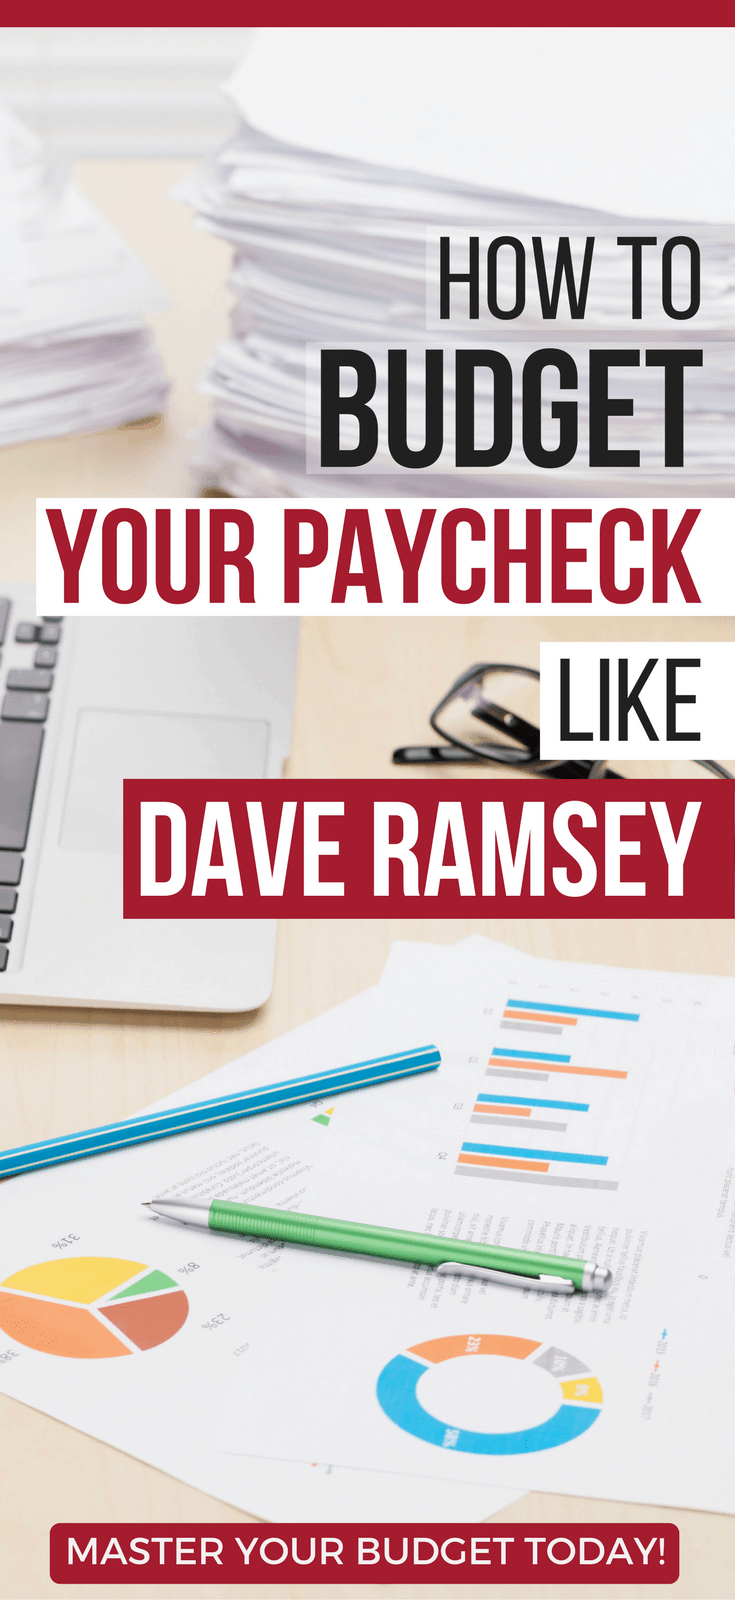 How To Budget Your Paycheck Like Dave Ramsey